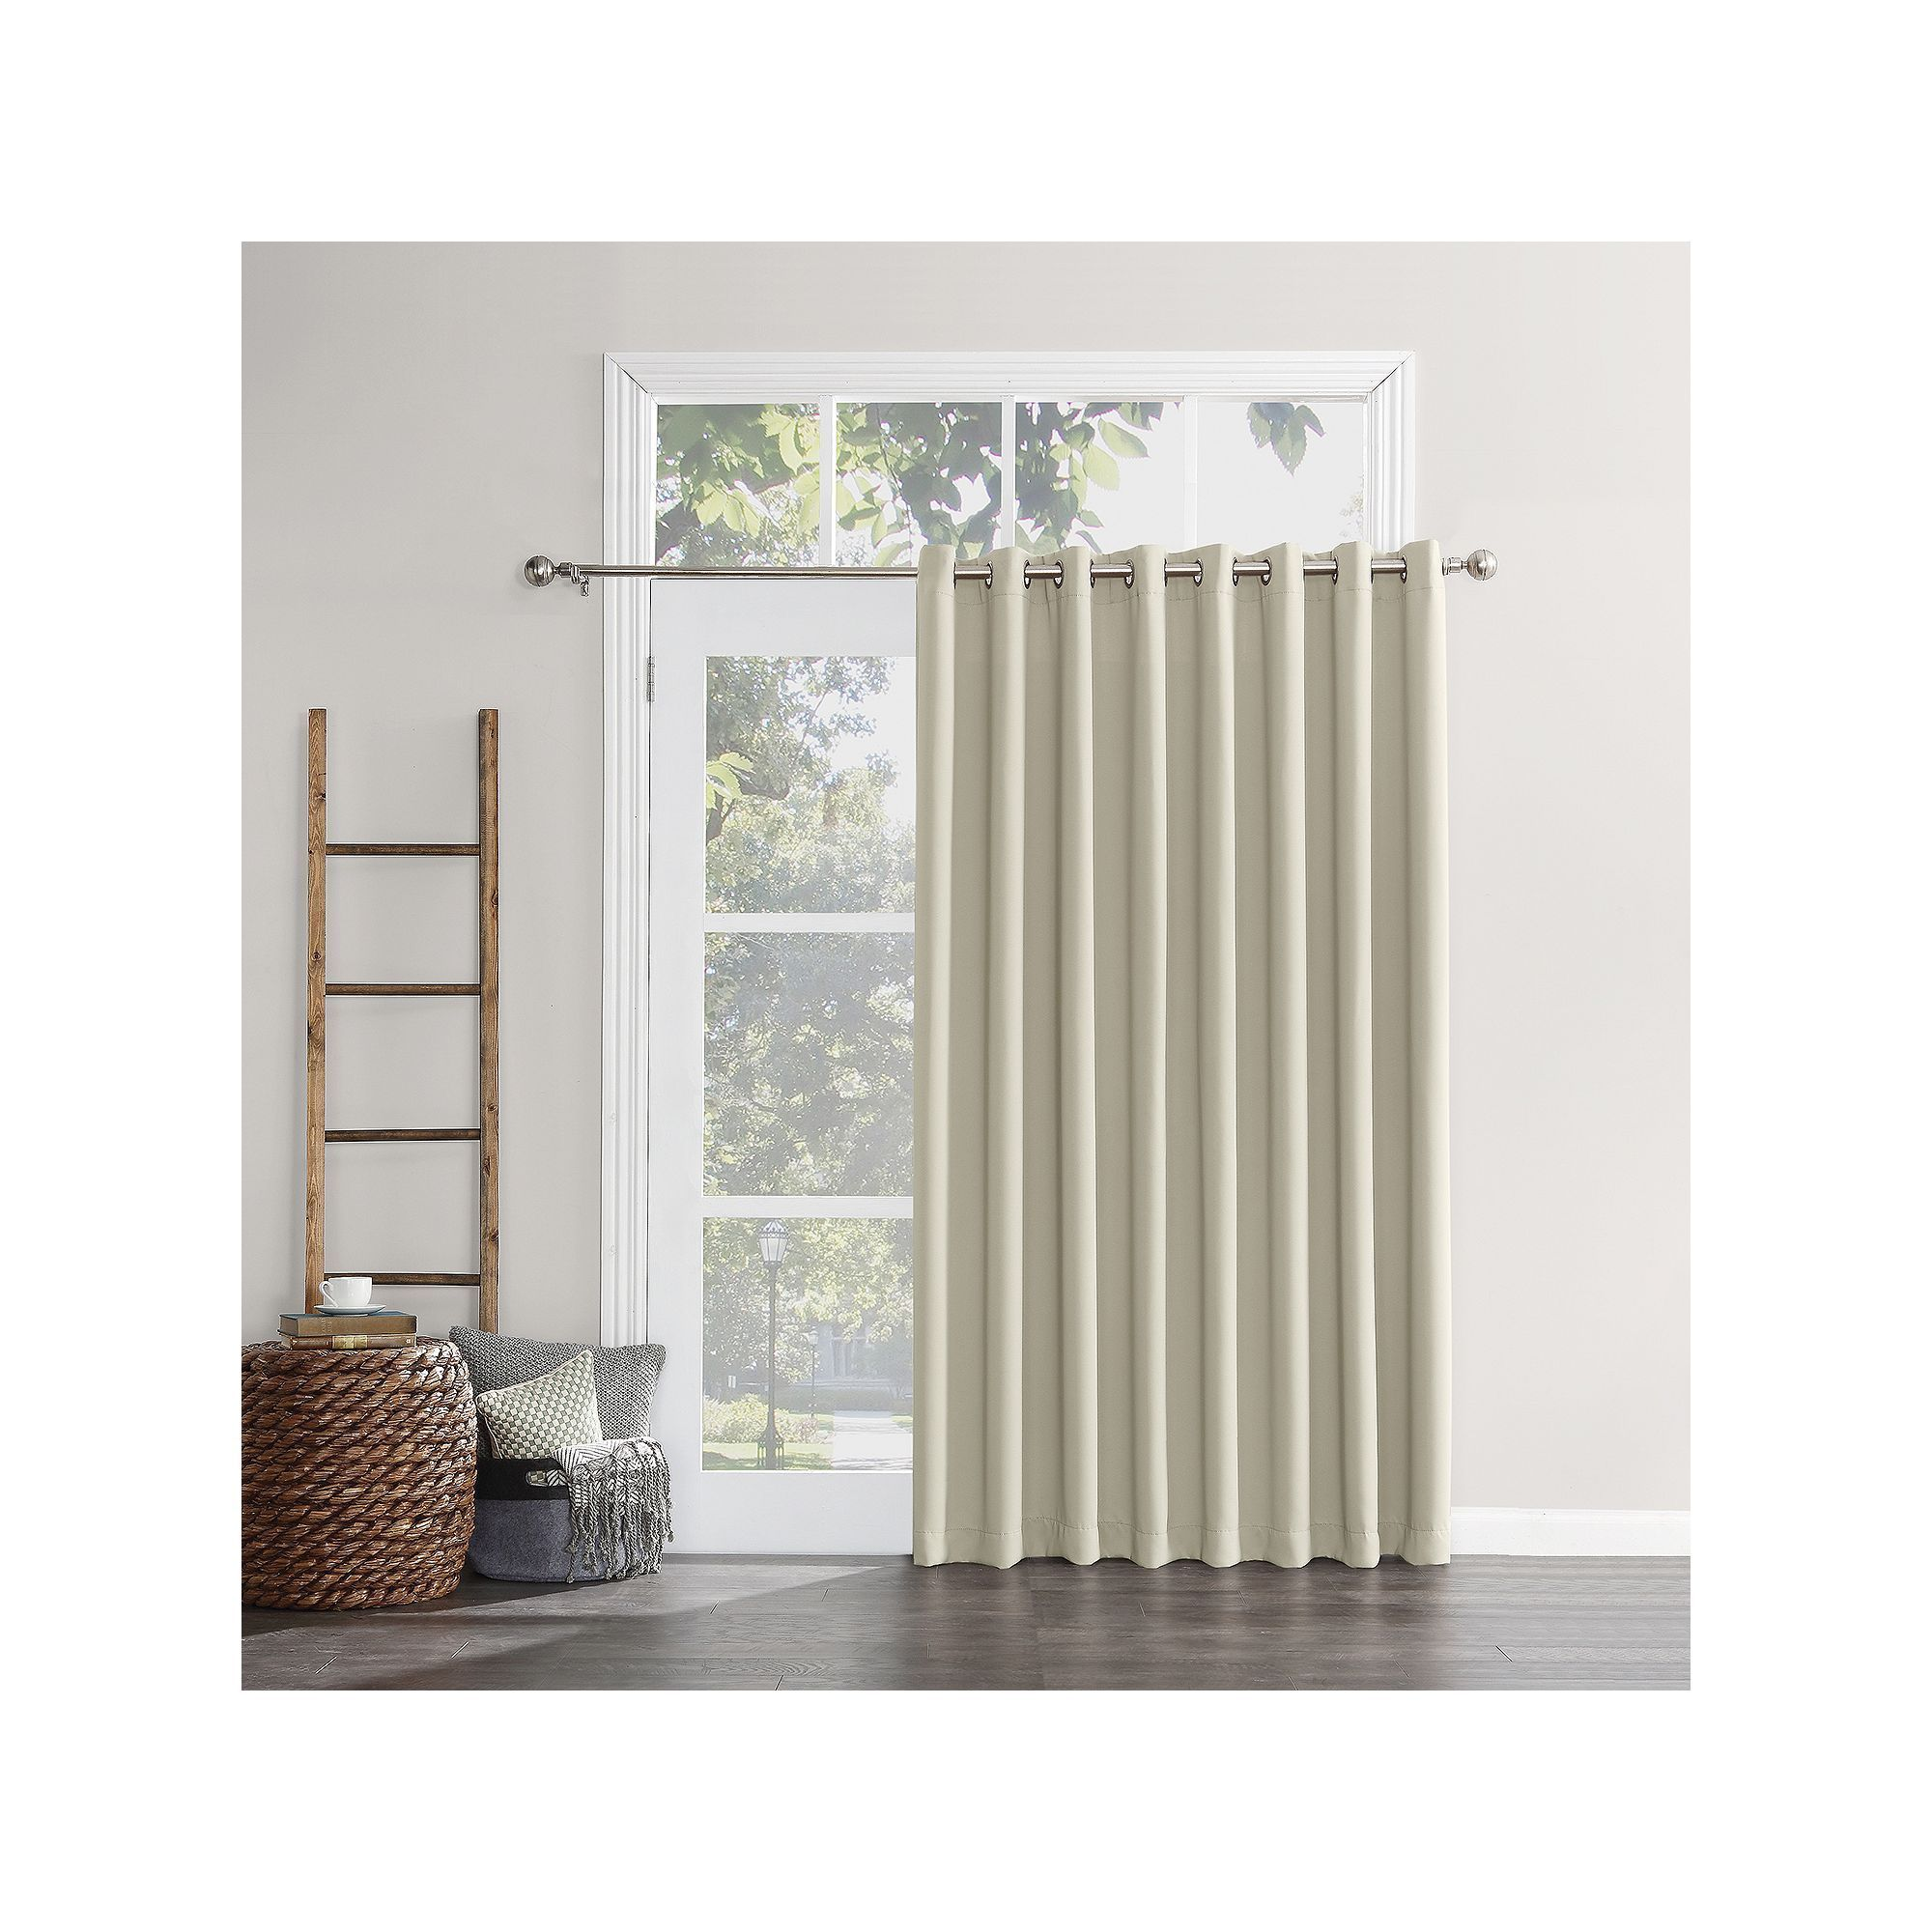 Sun Zero Blackout 1 Panel Ludlow Patio Door Window Curtain 100 X 84 Beig Green 100x84 Sliding Patio Doors Patio Door Curtains Patio Doors